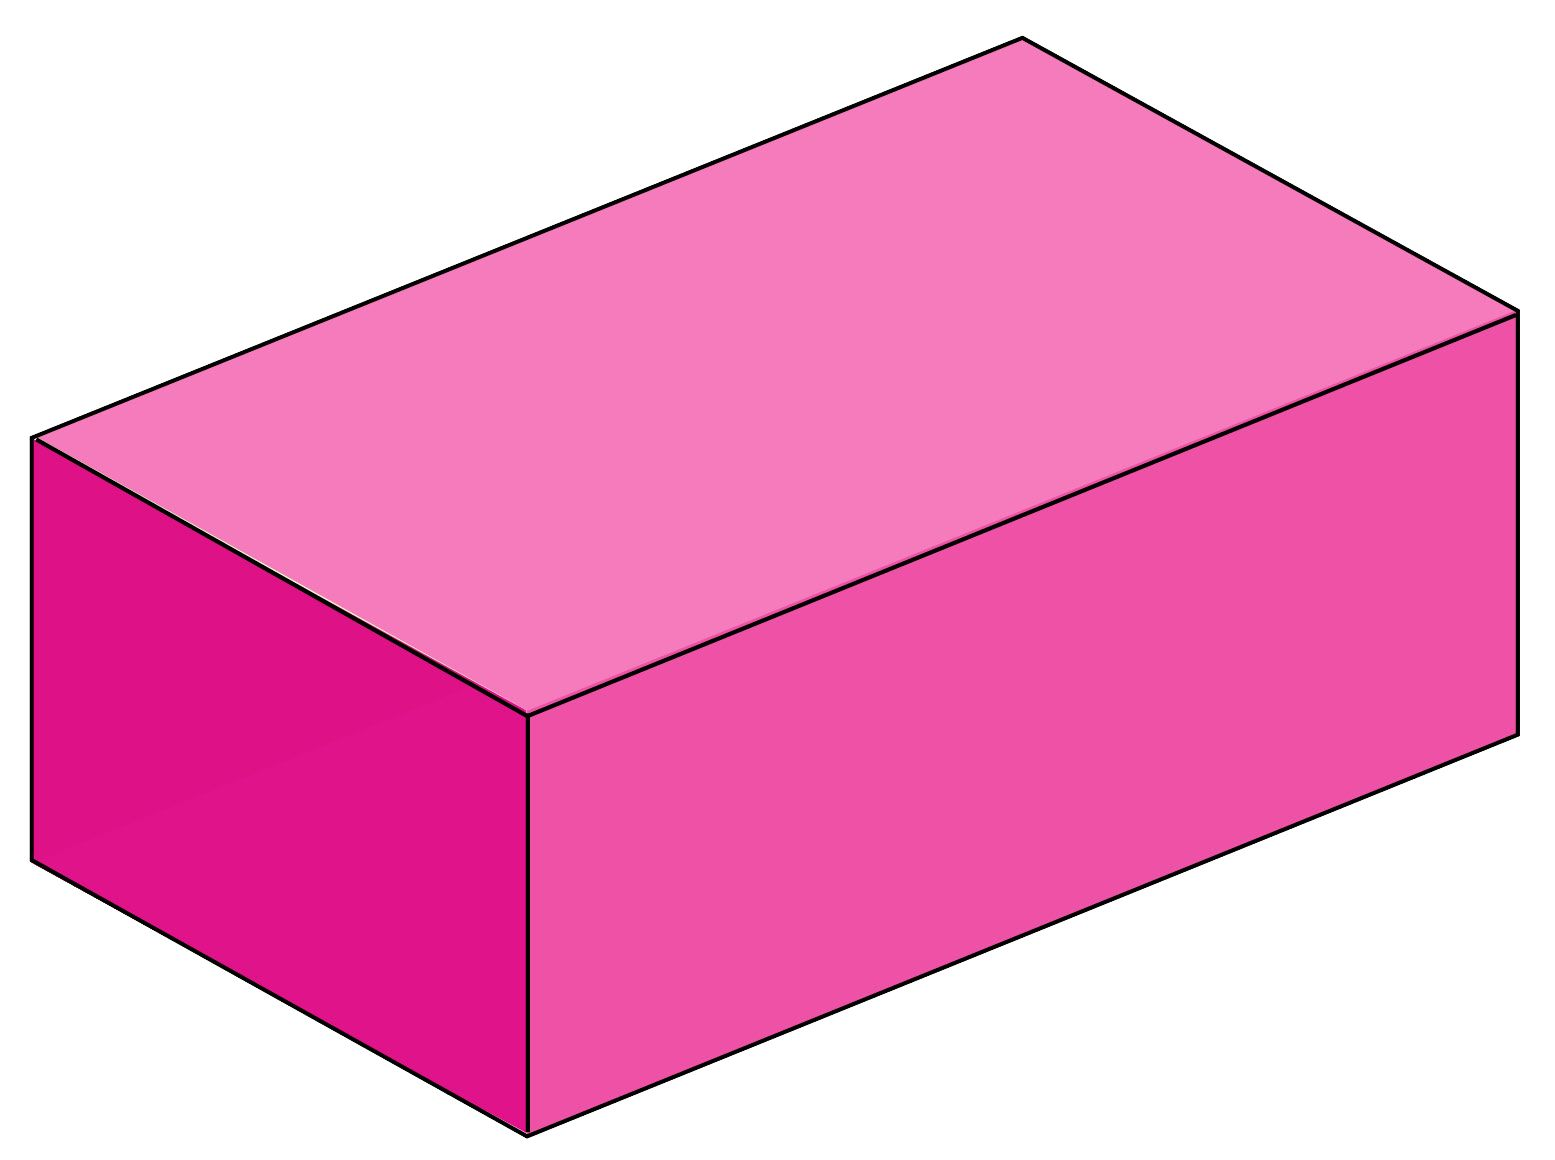 how to find out volume of a cuboid